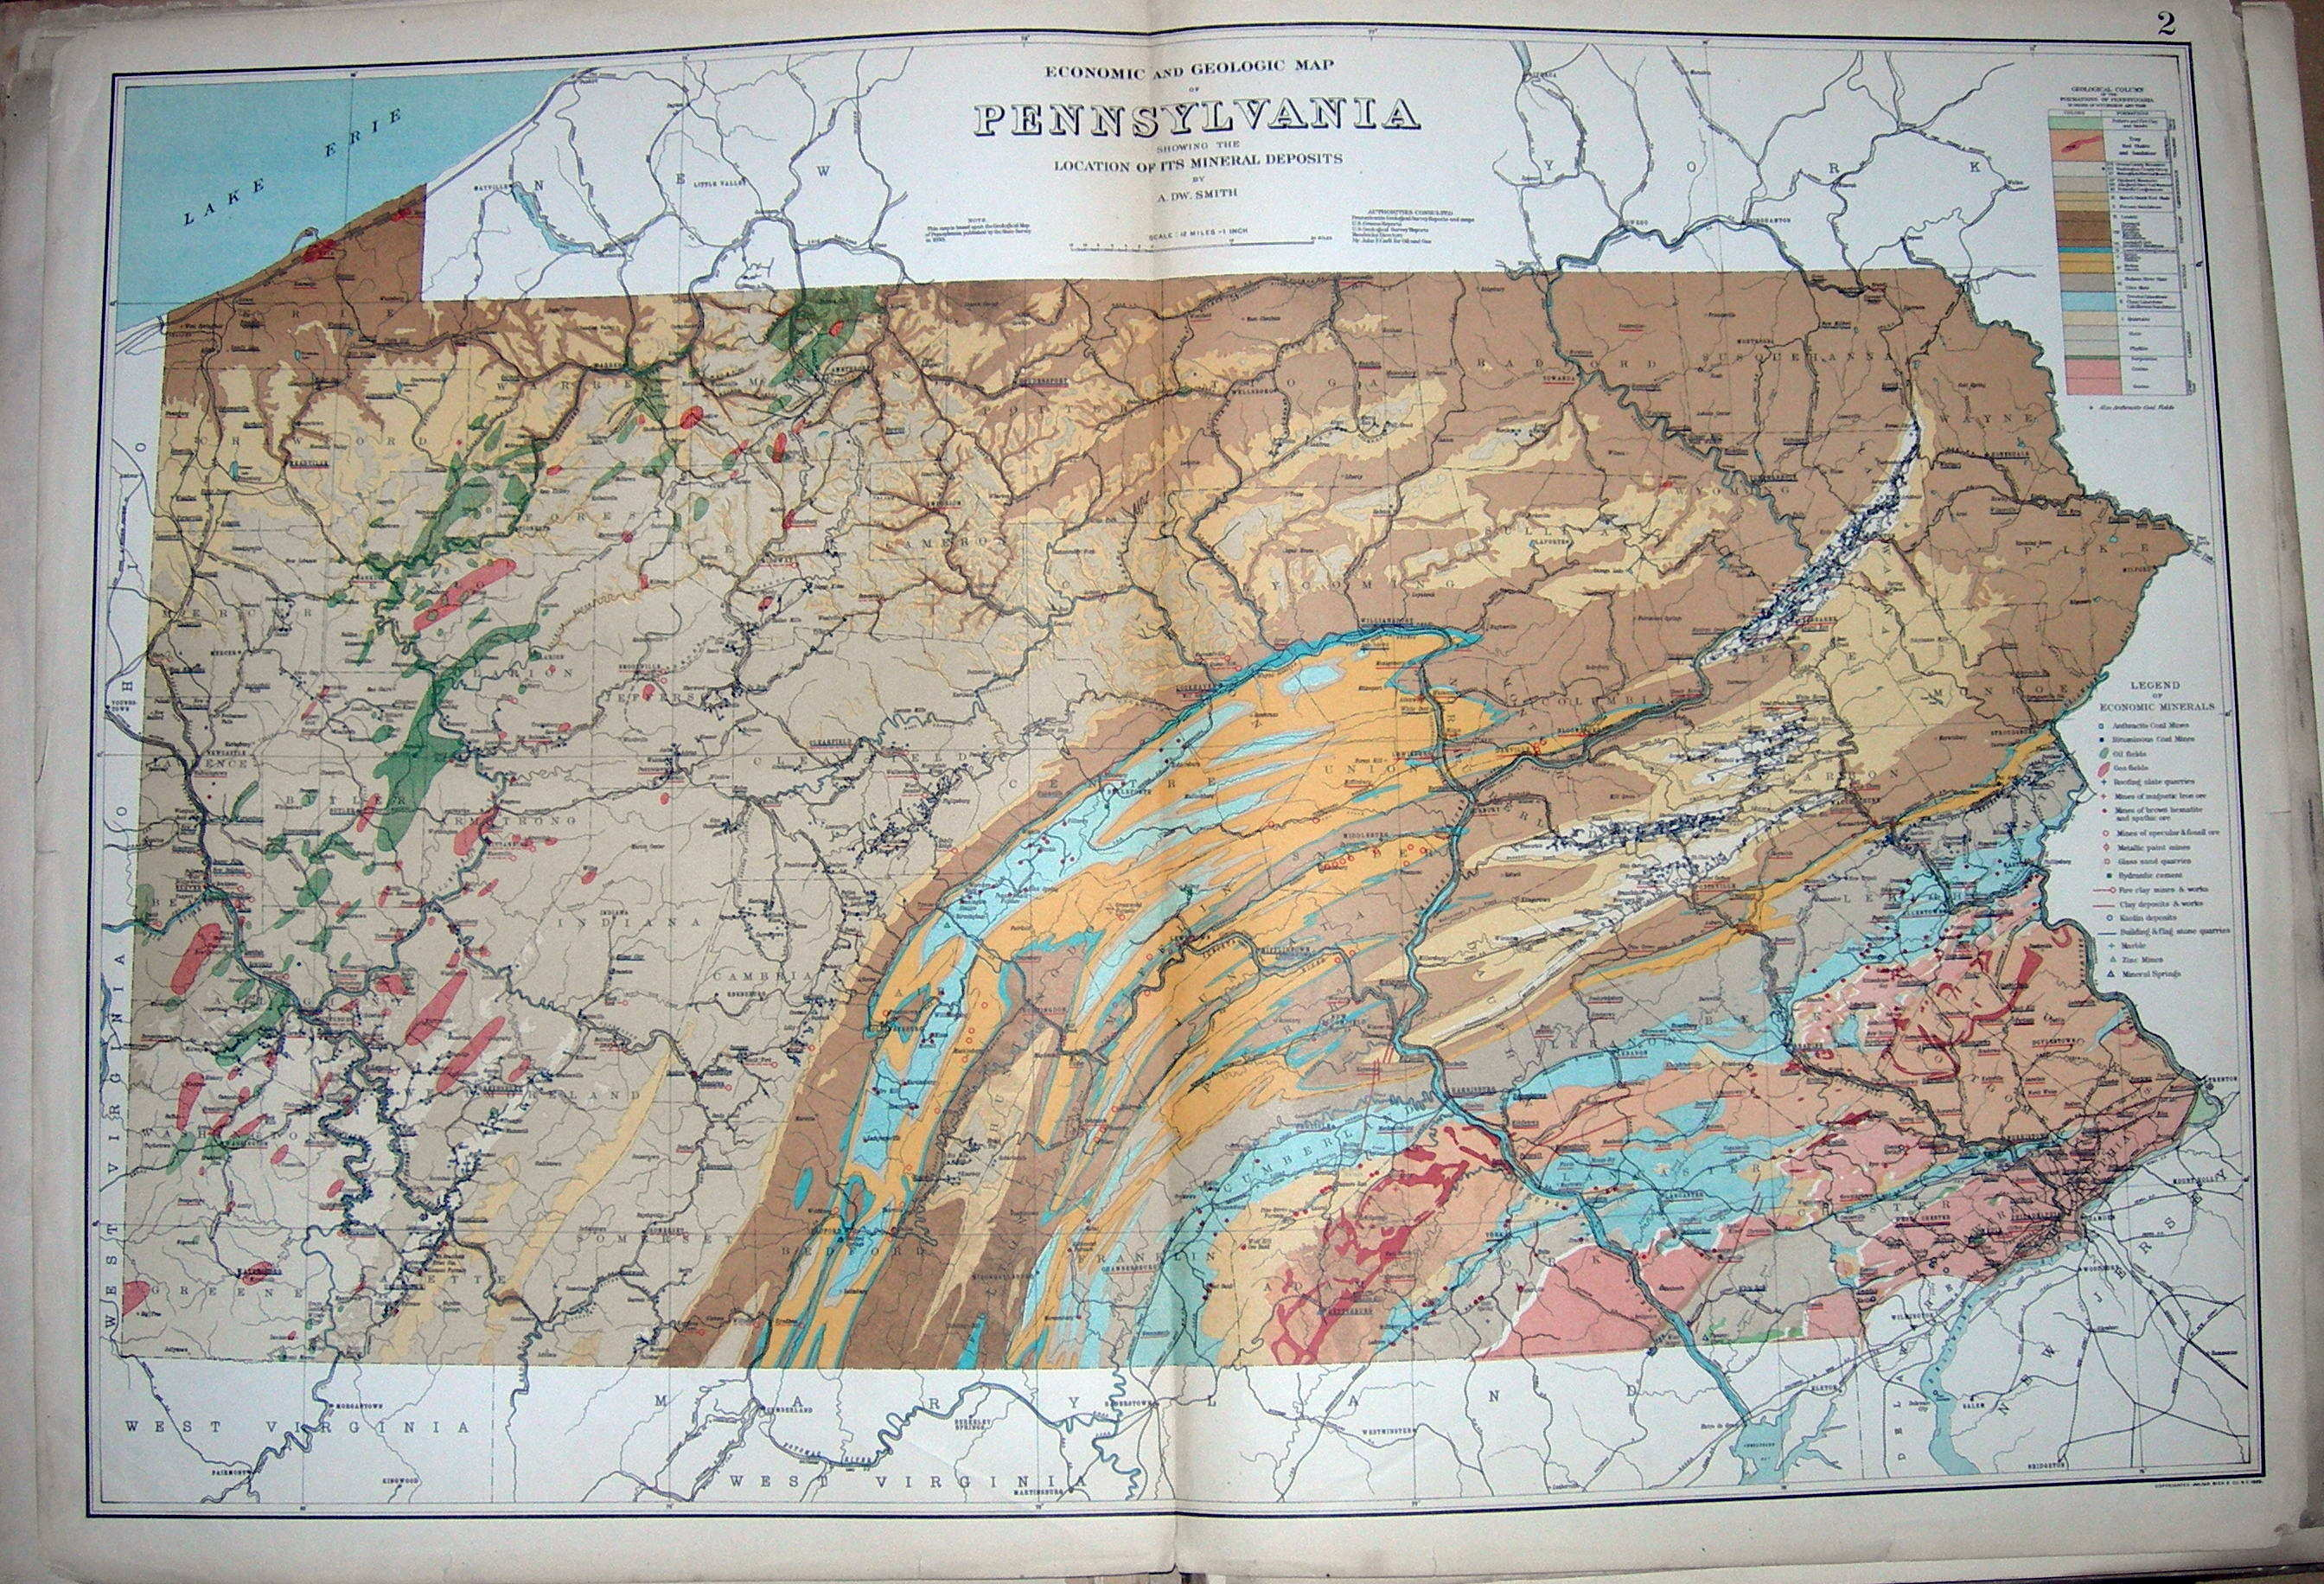 A folded in Pennsylvania map is Plate 1